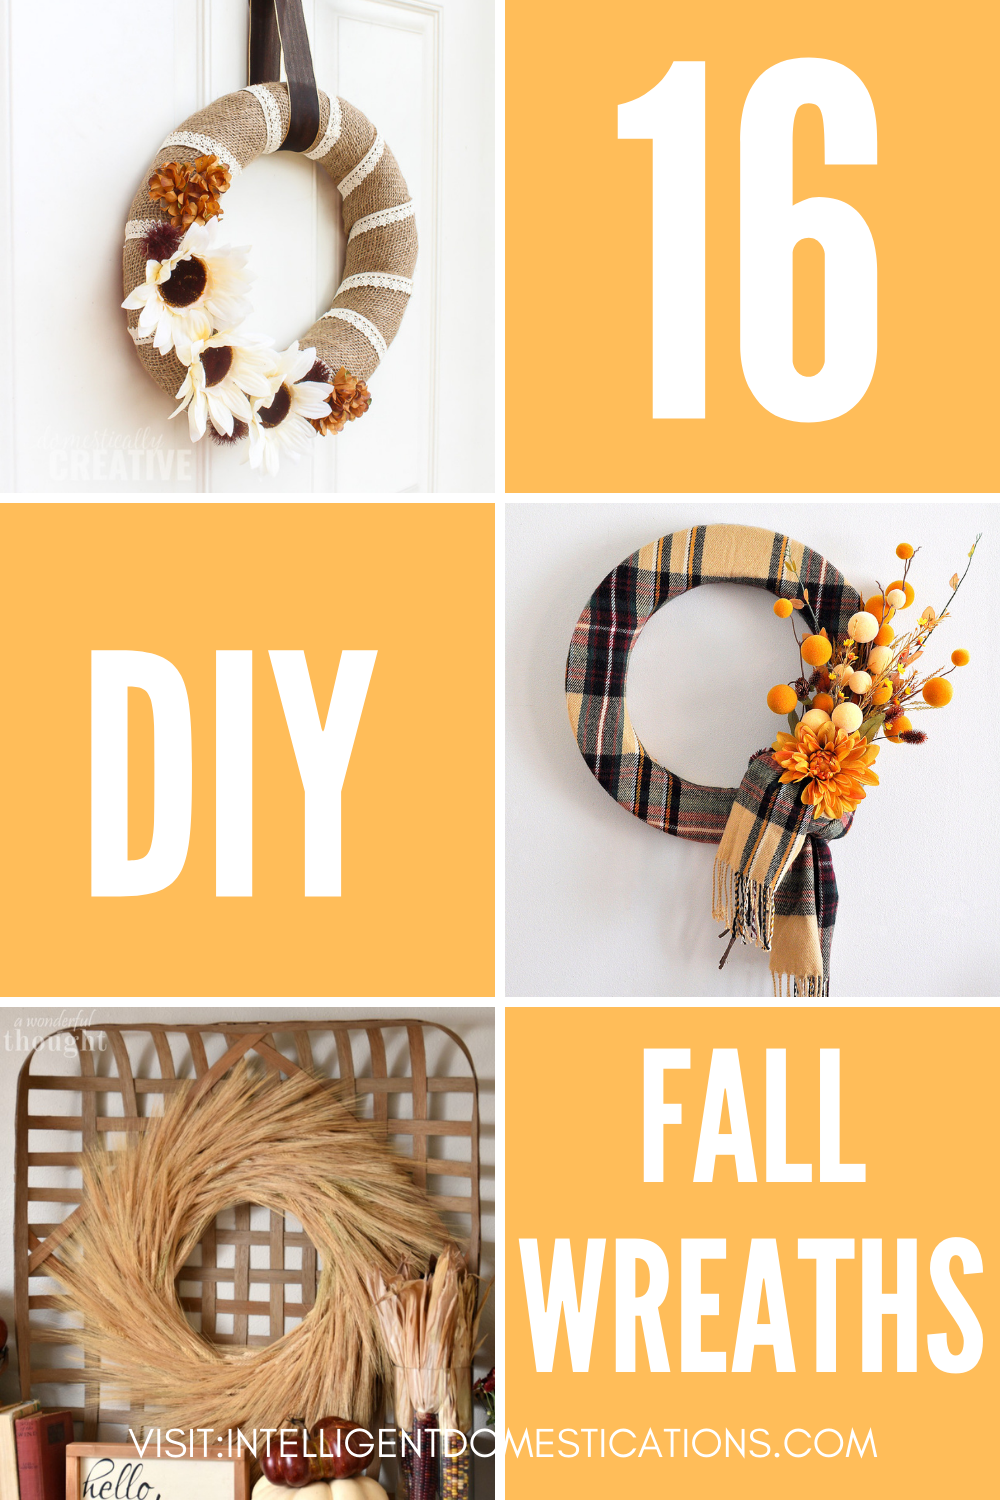 Pictures of three Fall Wreaths